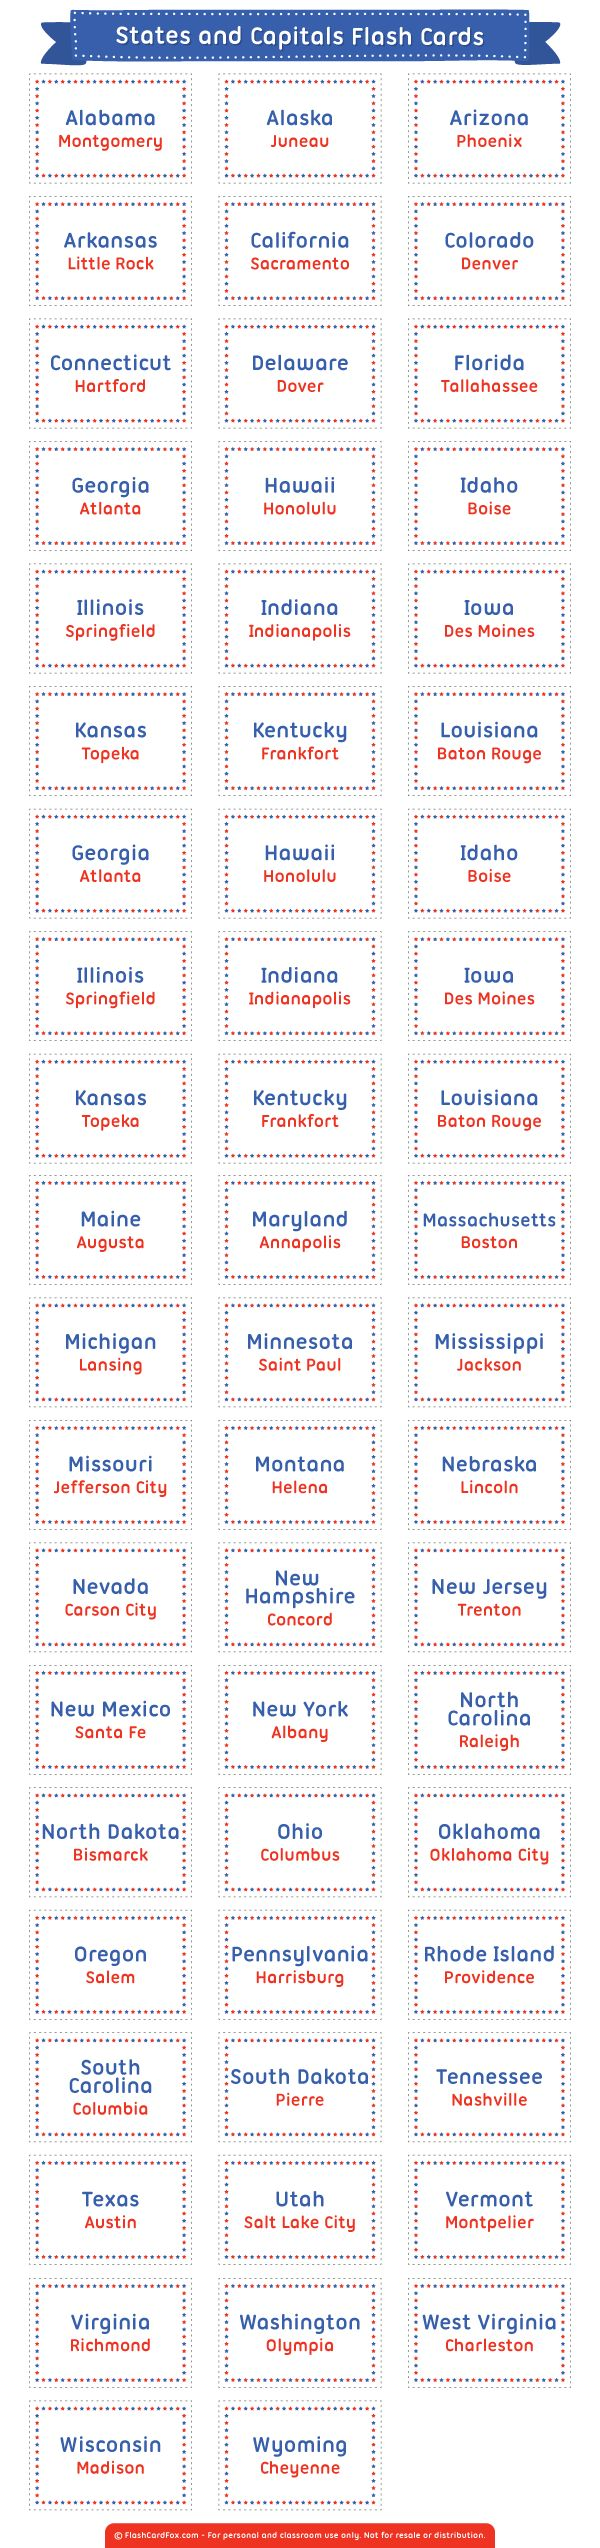 Free Printable States And Capitals Flash Cards Download Them In Pdf Format At Http Flashcardfox Com States And Capitals Homeschool Social Studies Flashcards